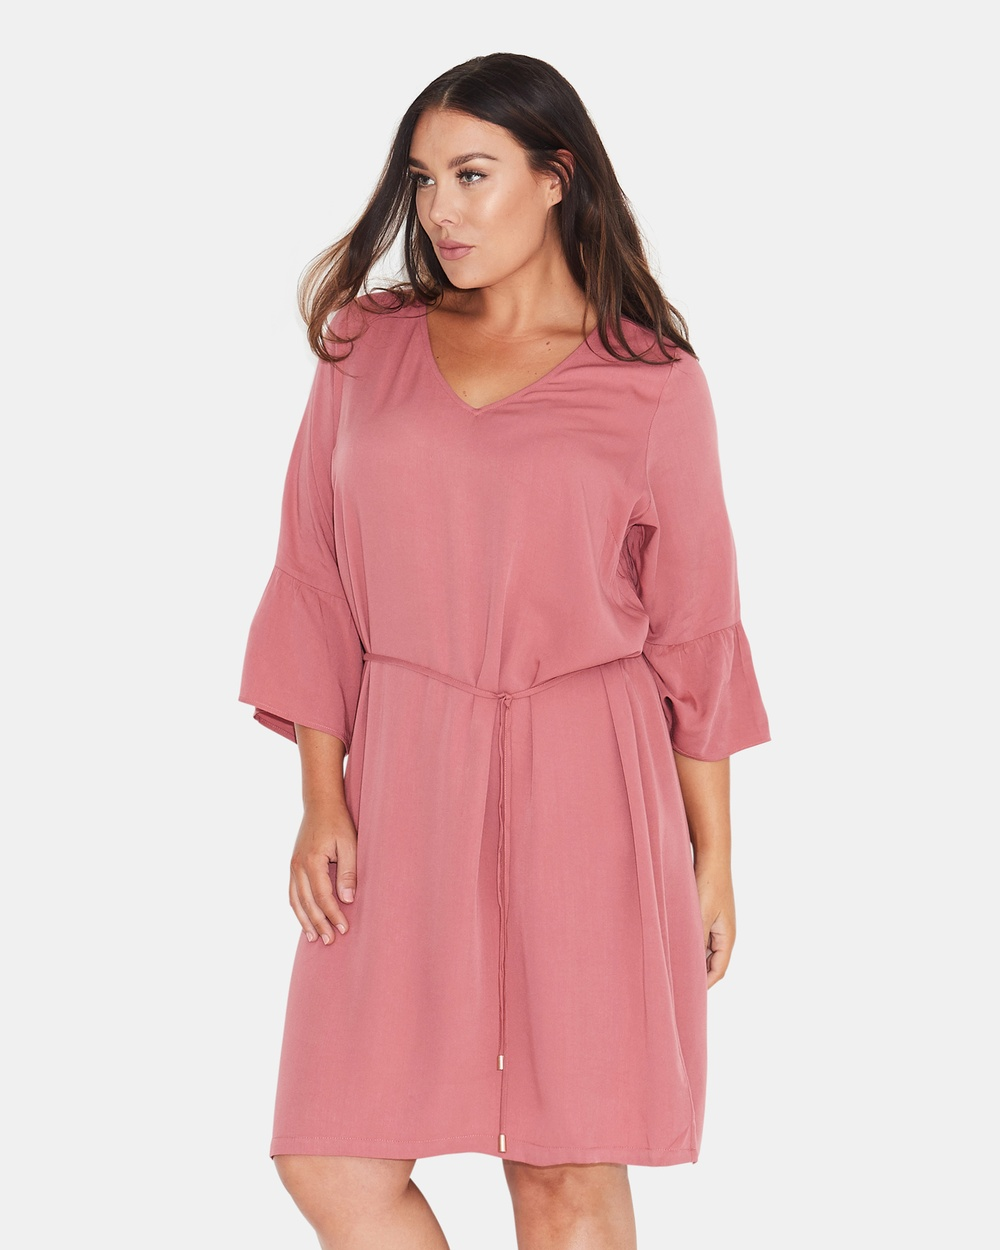 17 Sundays Basic Frill Cuff Shift Dress Dresses Pink Basic Frill Cuff Shift Dress